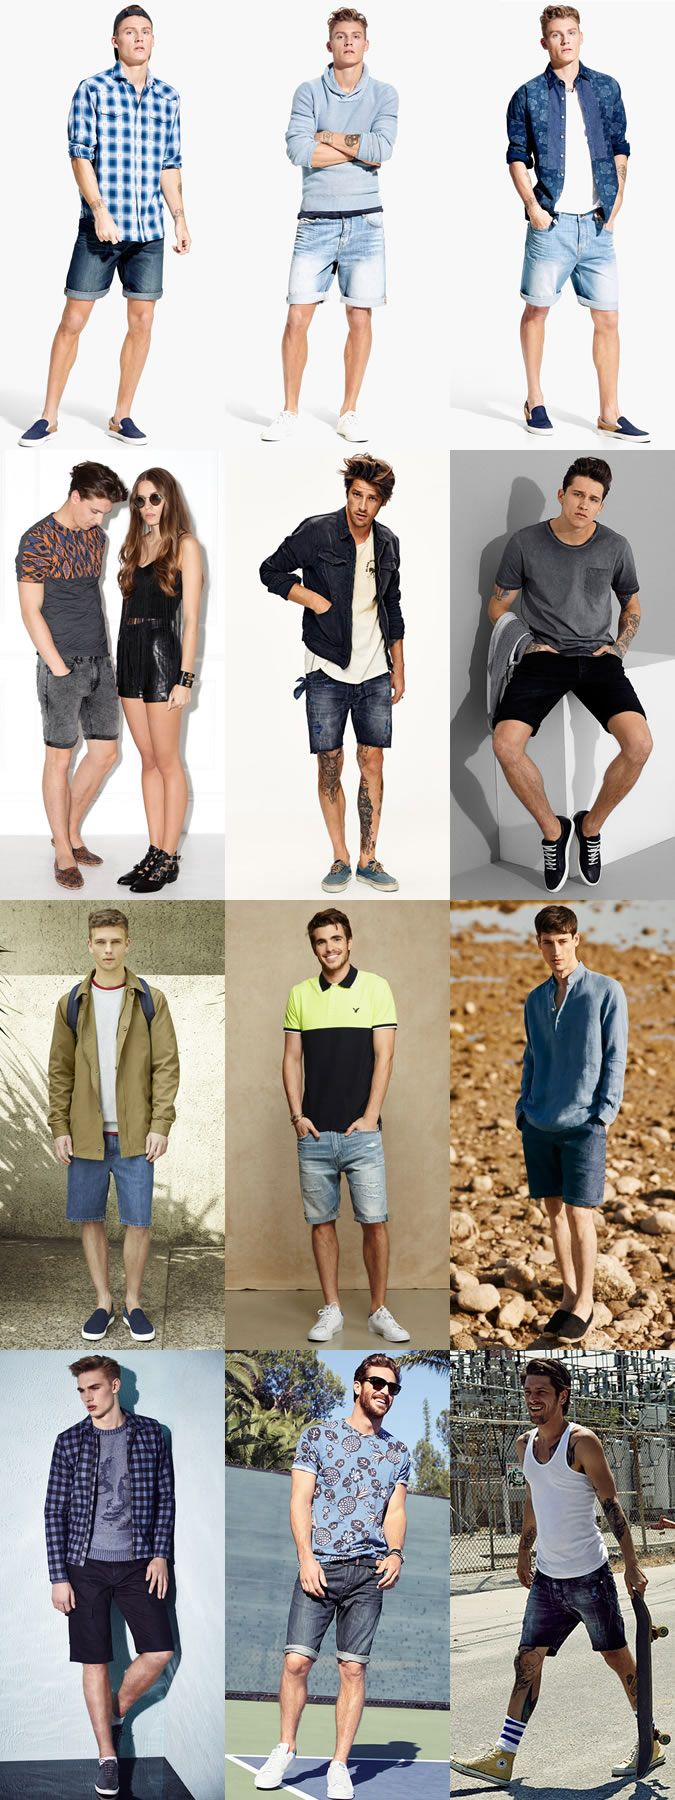 Men's Denim Shorts and Footwear/Shoes Combinations Outfit Inspiration Lookbook